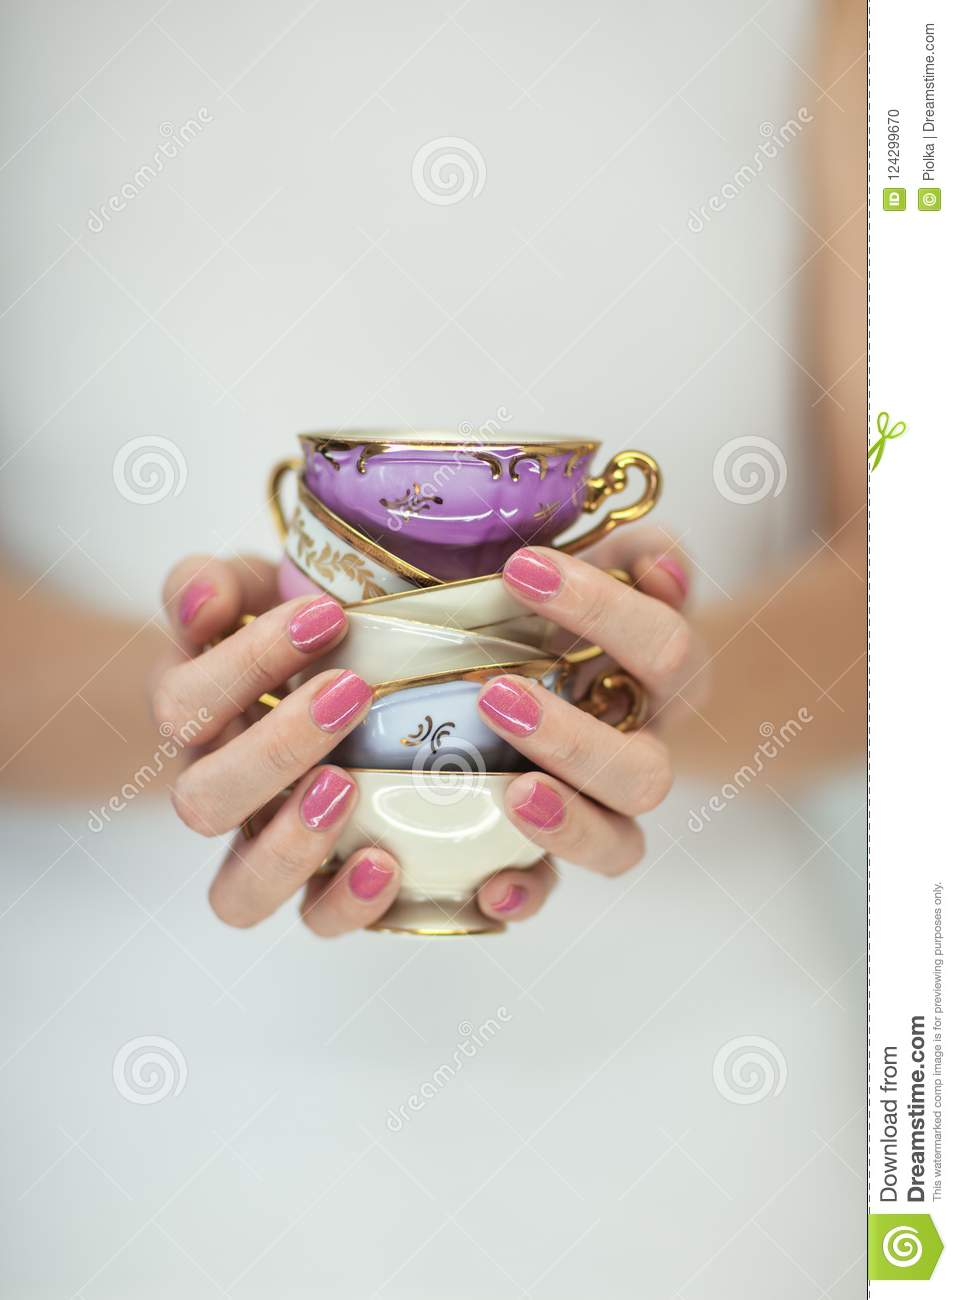 Beautiful woman hands with perfect pink nail polish holding little vintage tea cups